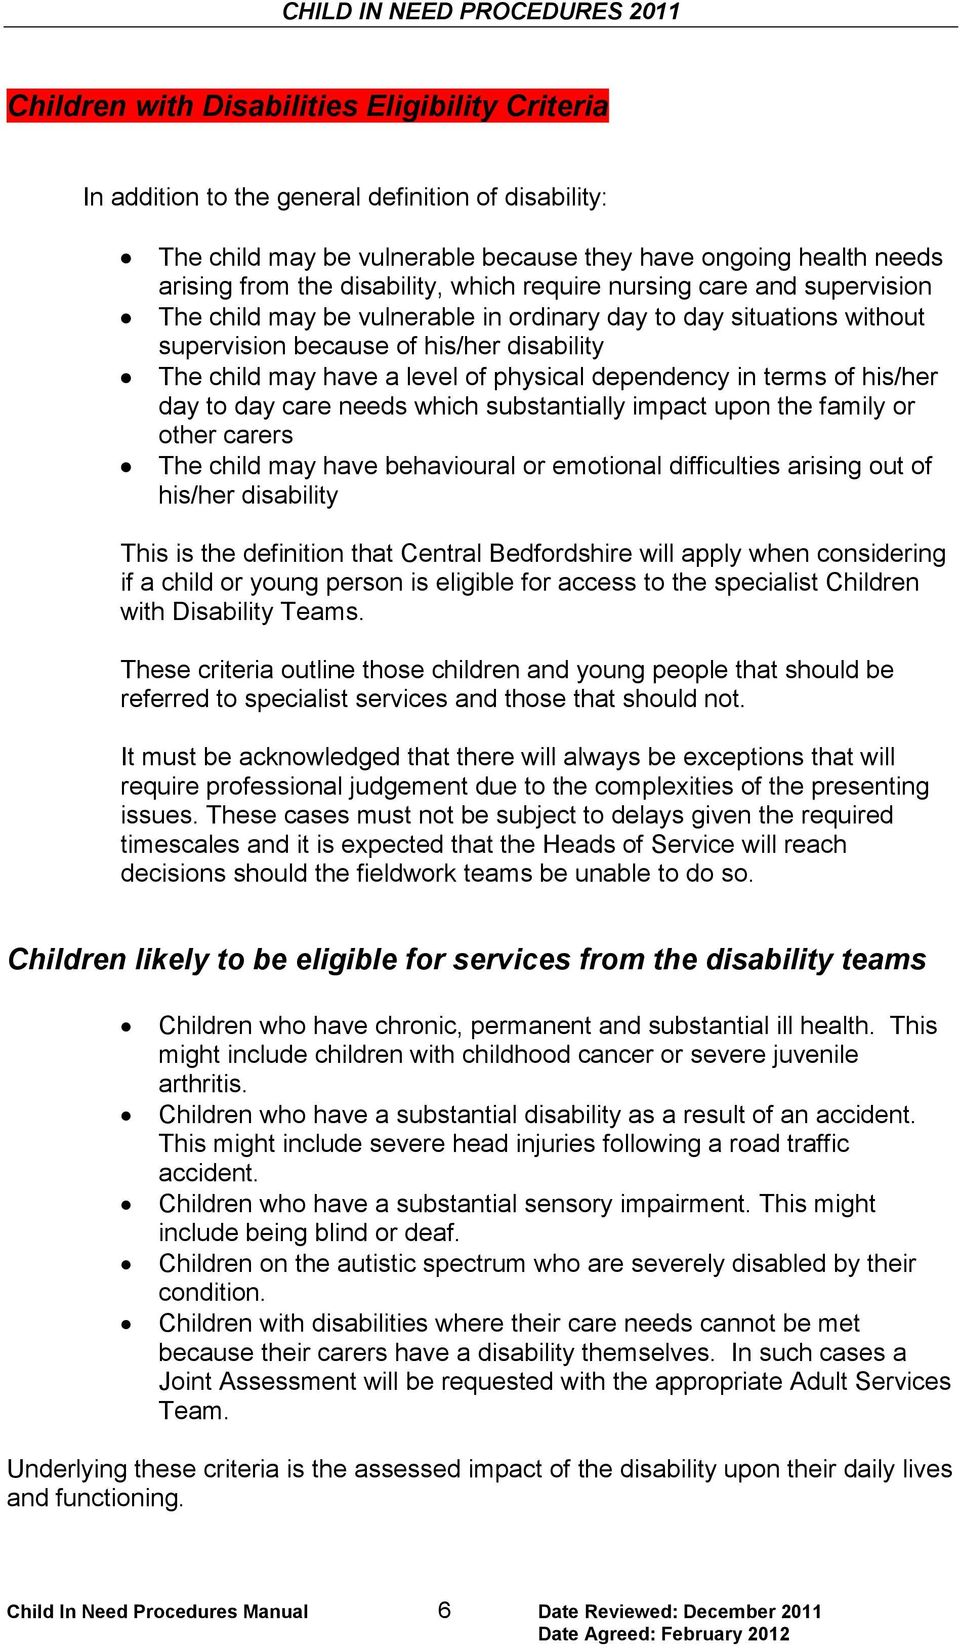 dependency in terms of his/her day to day care needs which substantially impact upon the family or other carers The child may have behavioural or emotional difficulties arising out of his/her